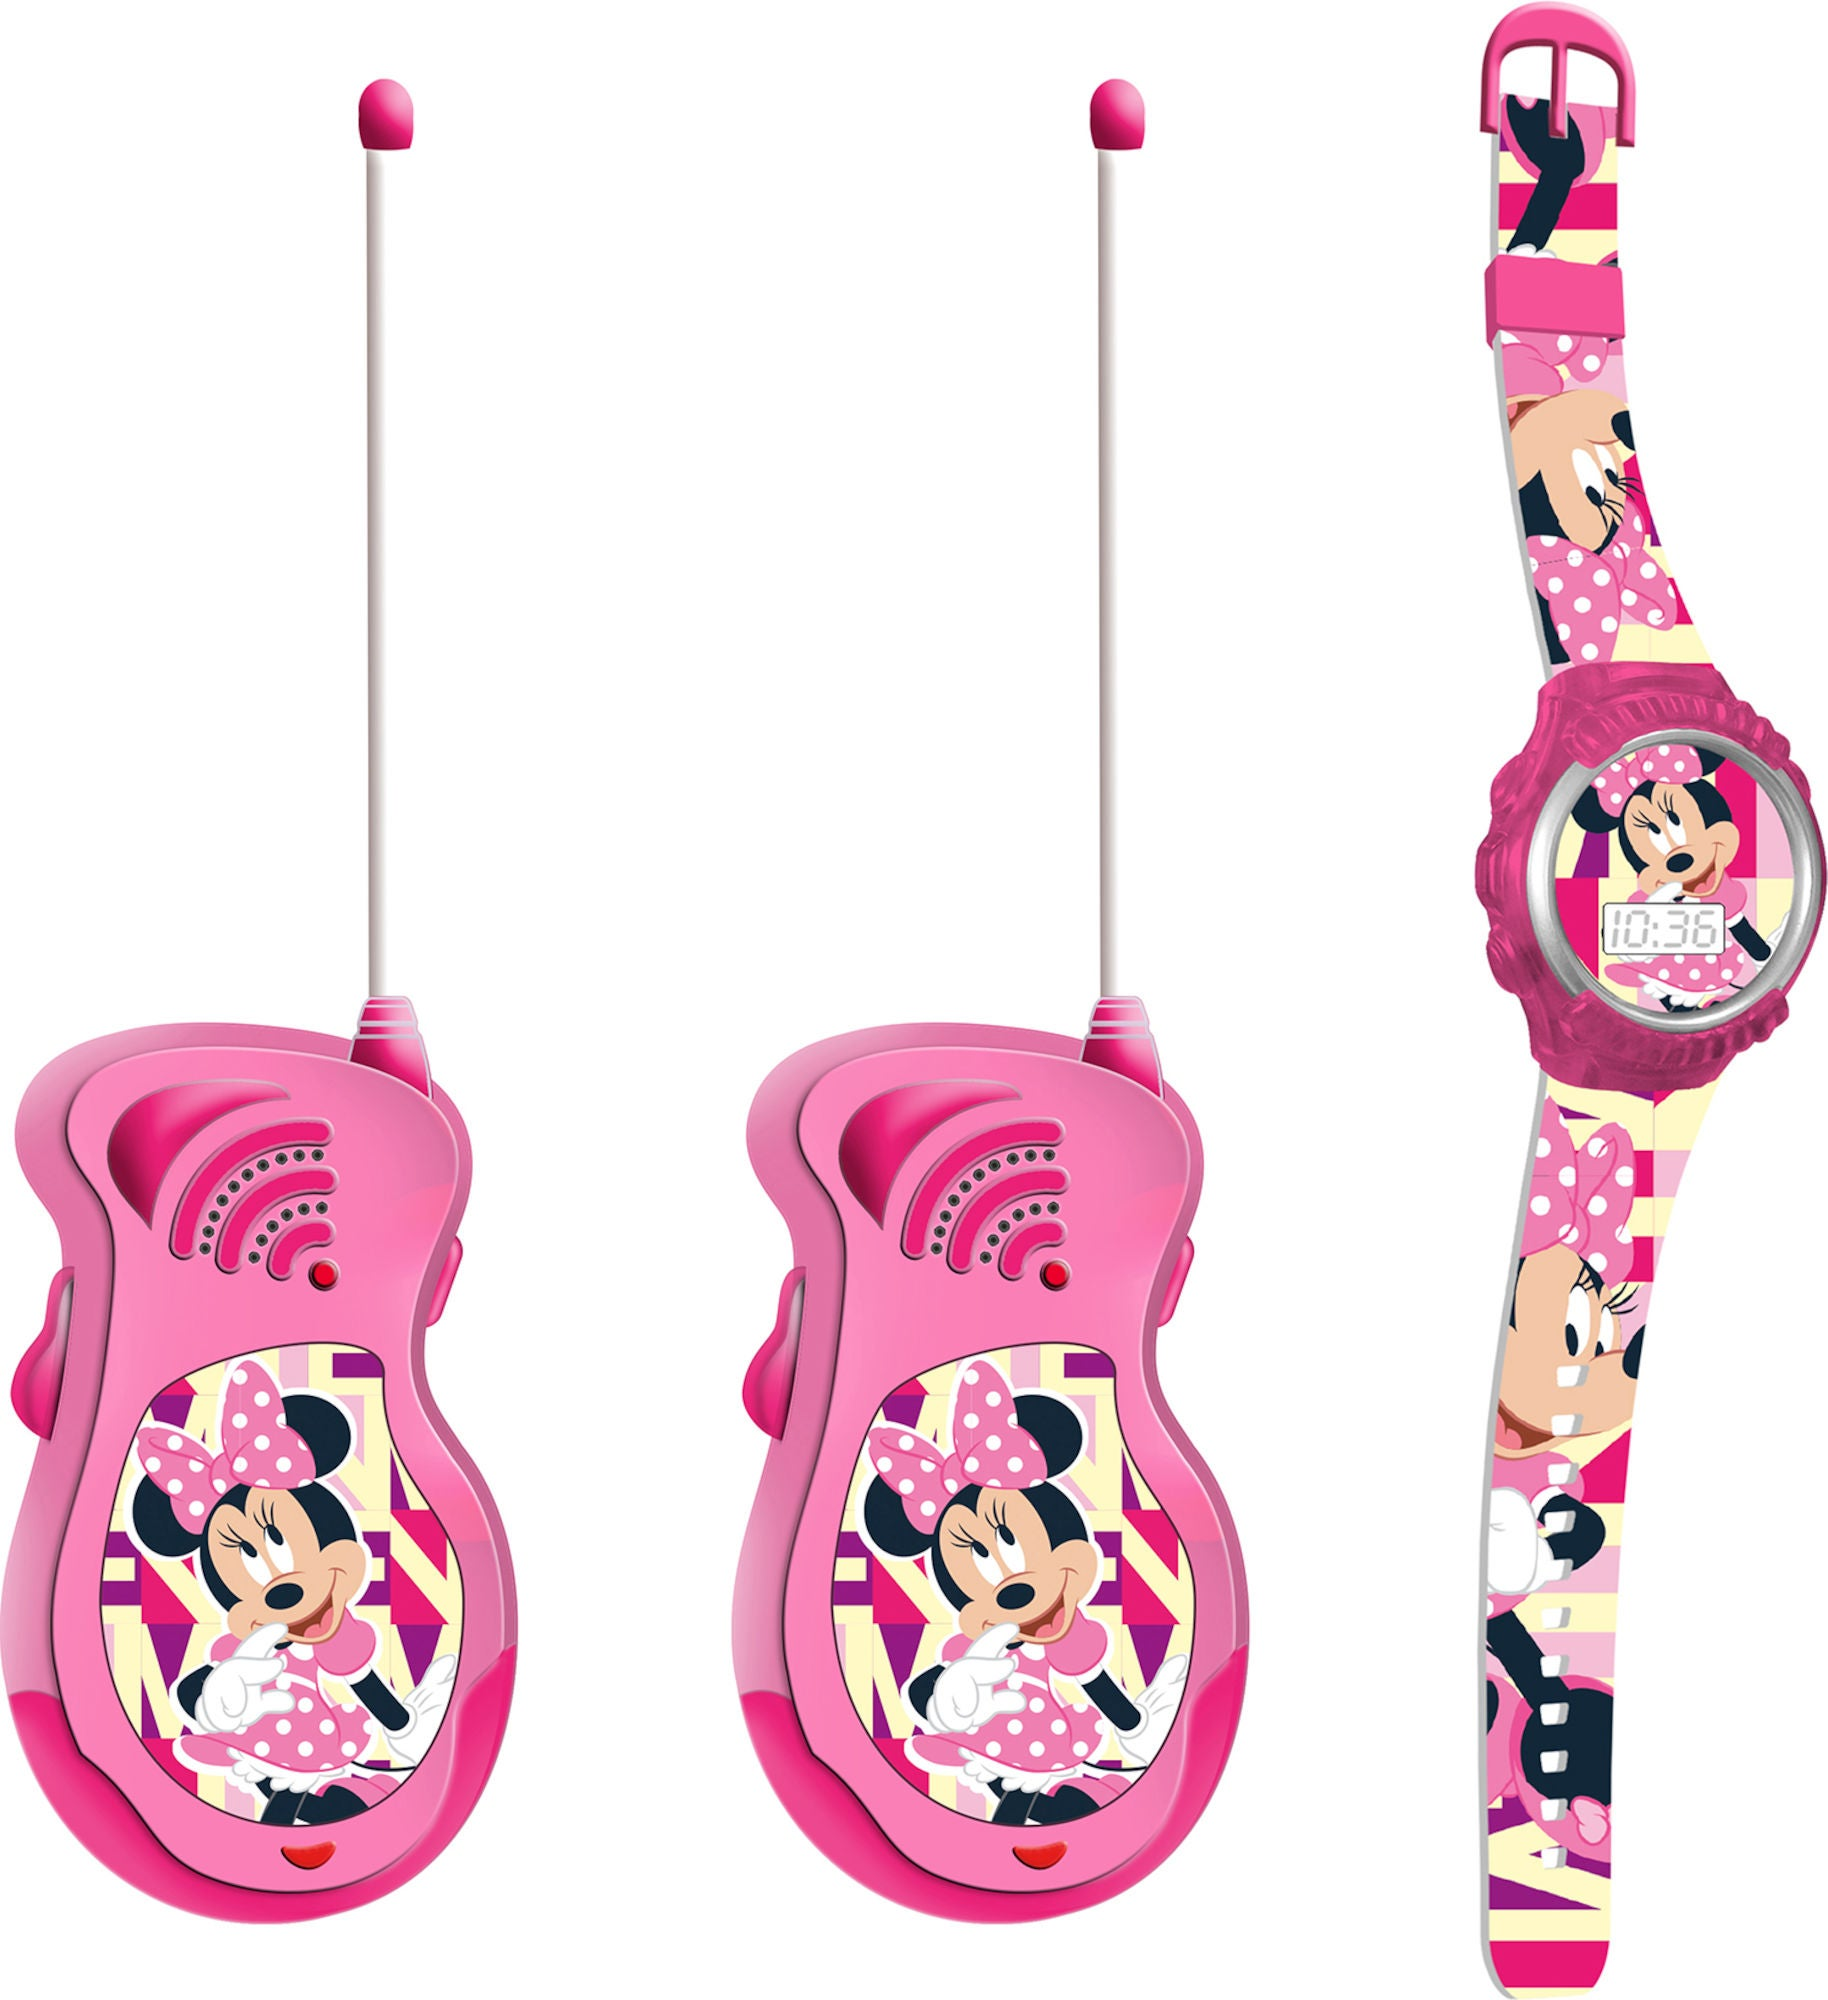 Disney Minni Mus Walkie-Talkies og Klokke